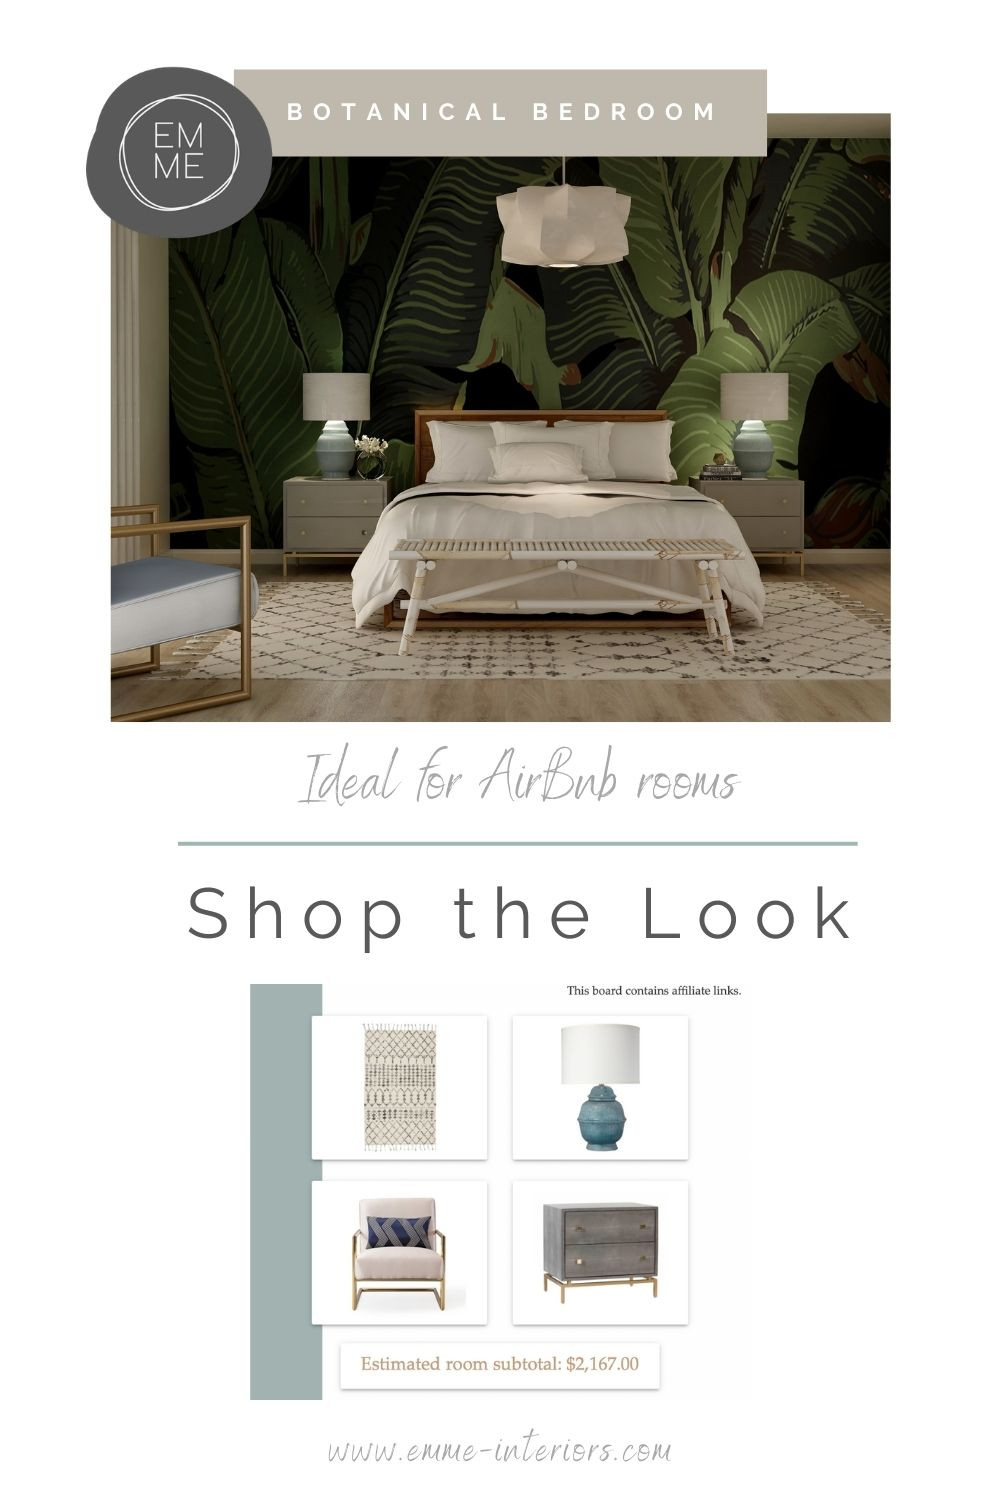 Shop the Look for this Botanical Bedroom design.  This design is ideal for an AirBnb room.